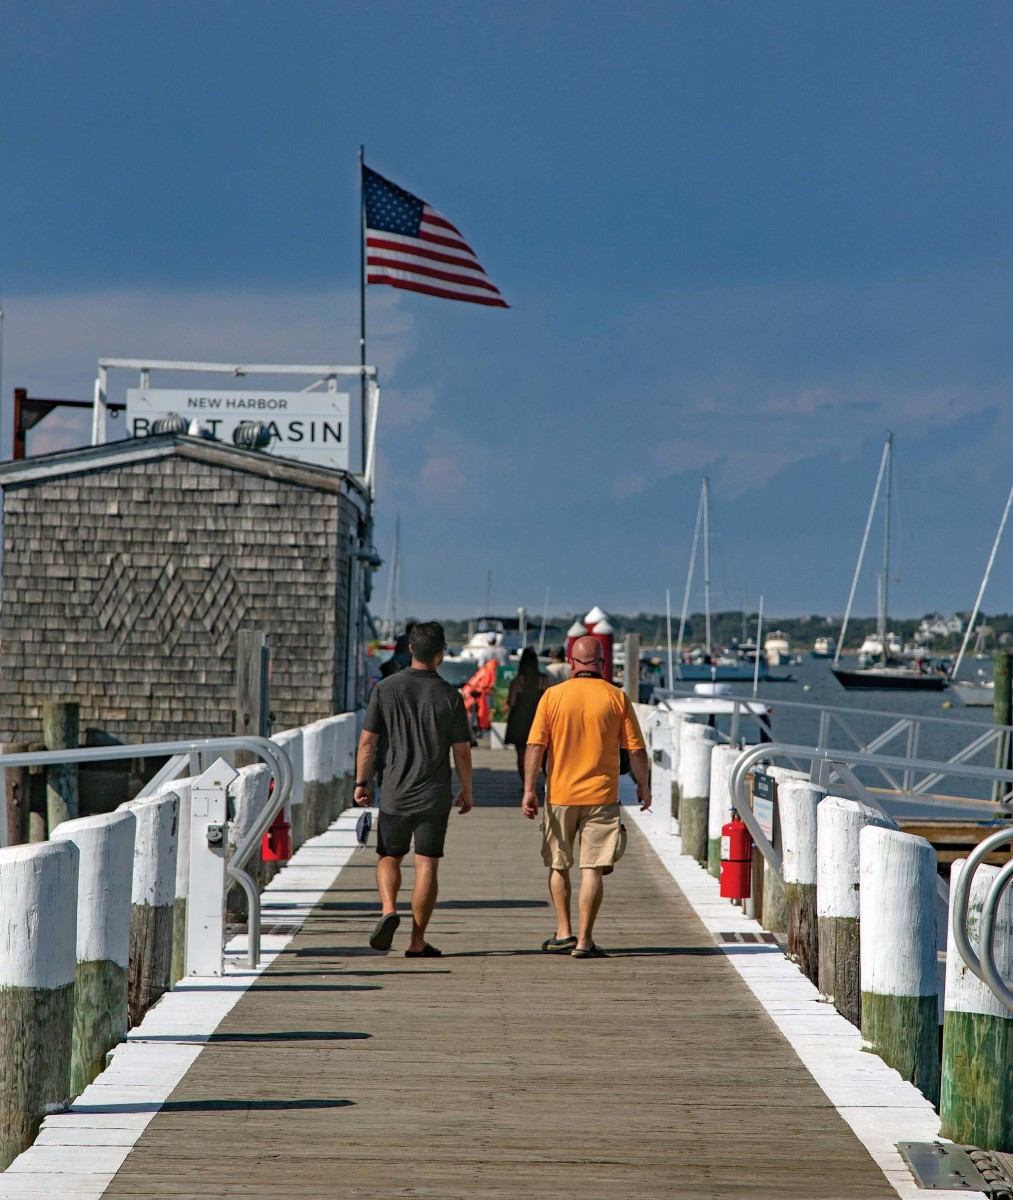 The Block Island Boat Basin is a gateway to summer activities, or in our case, lobster rolls and mudslides at The Oar.